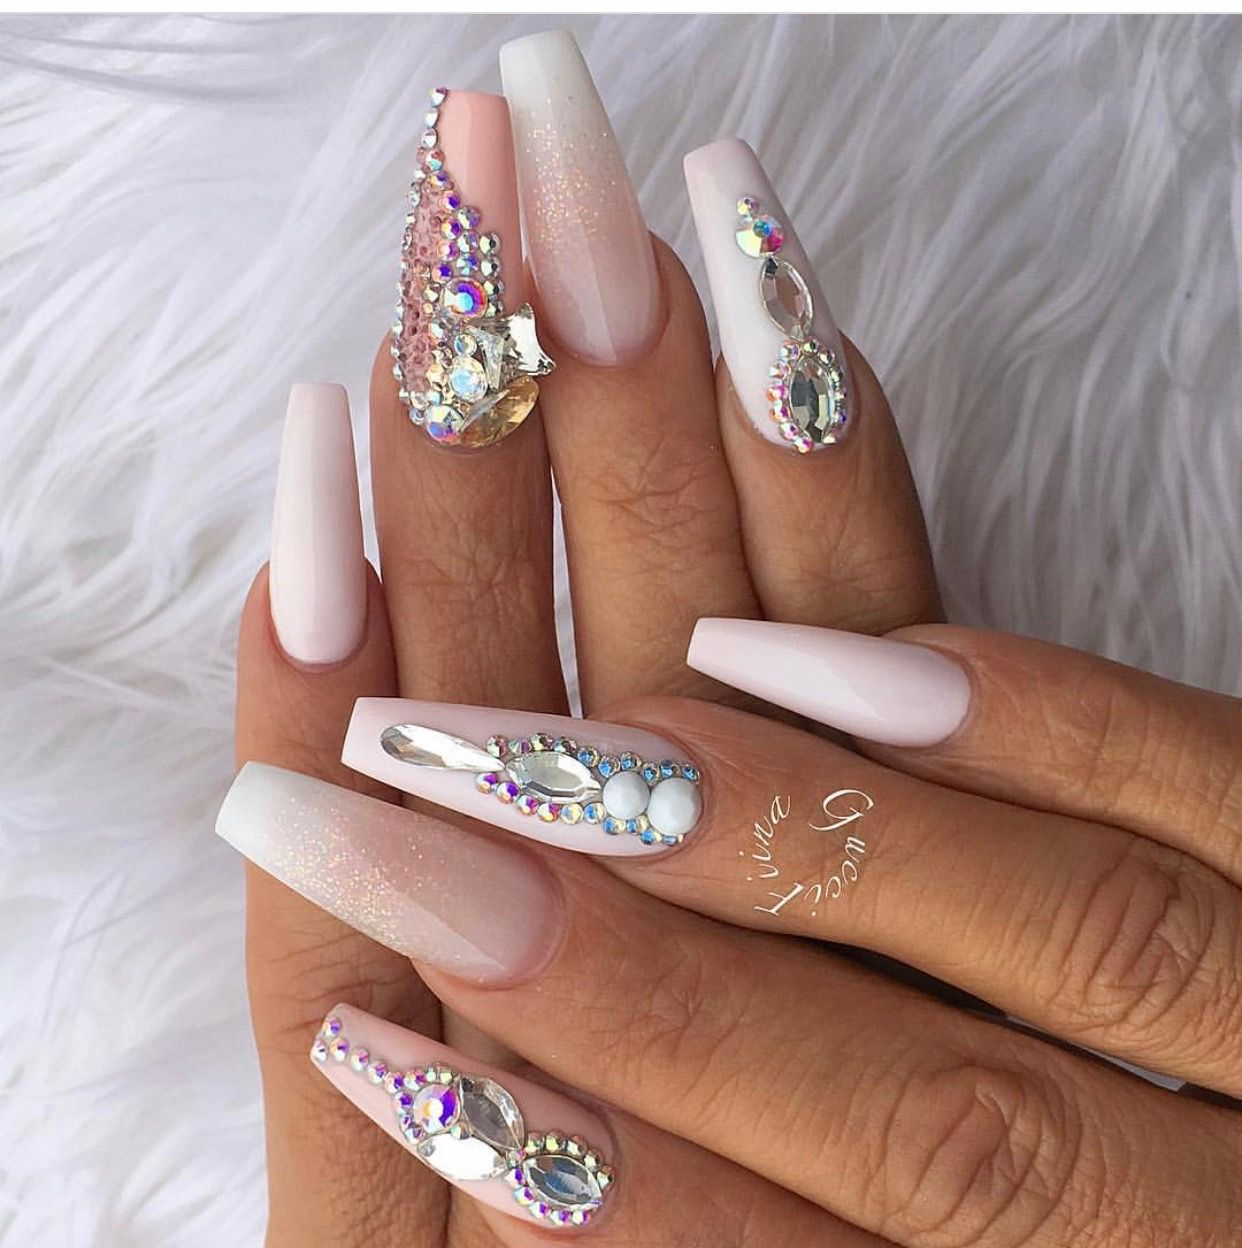 Pin by Ky on Nails | Pinterest | Coffin nails, Nails inspiration and ...